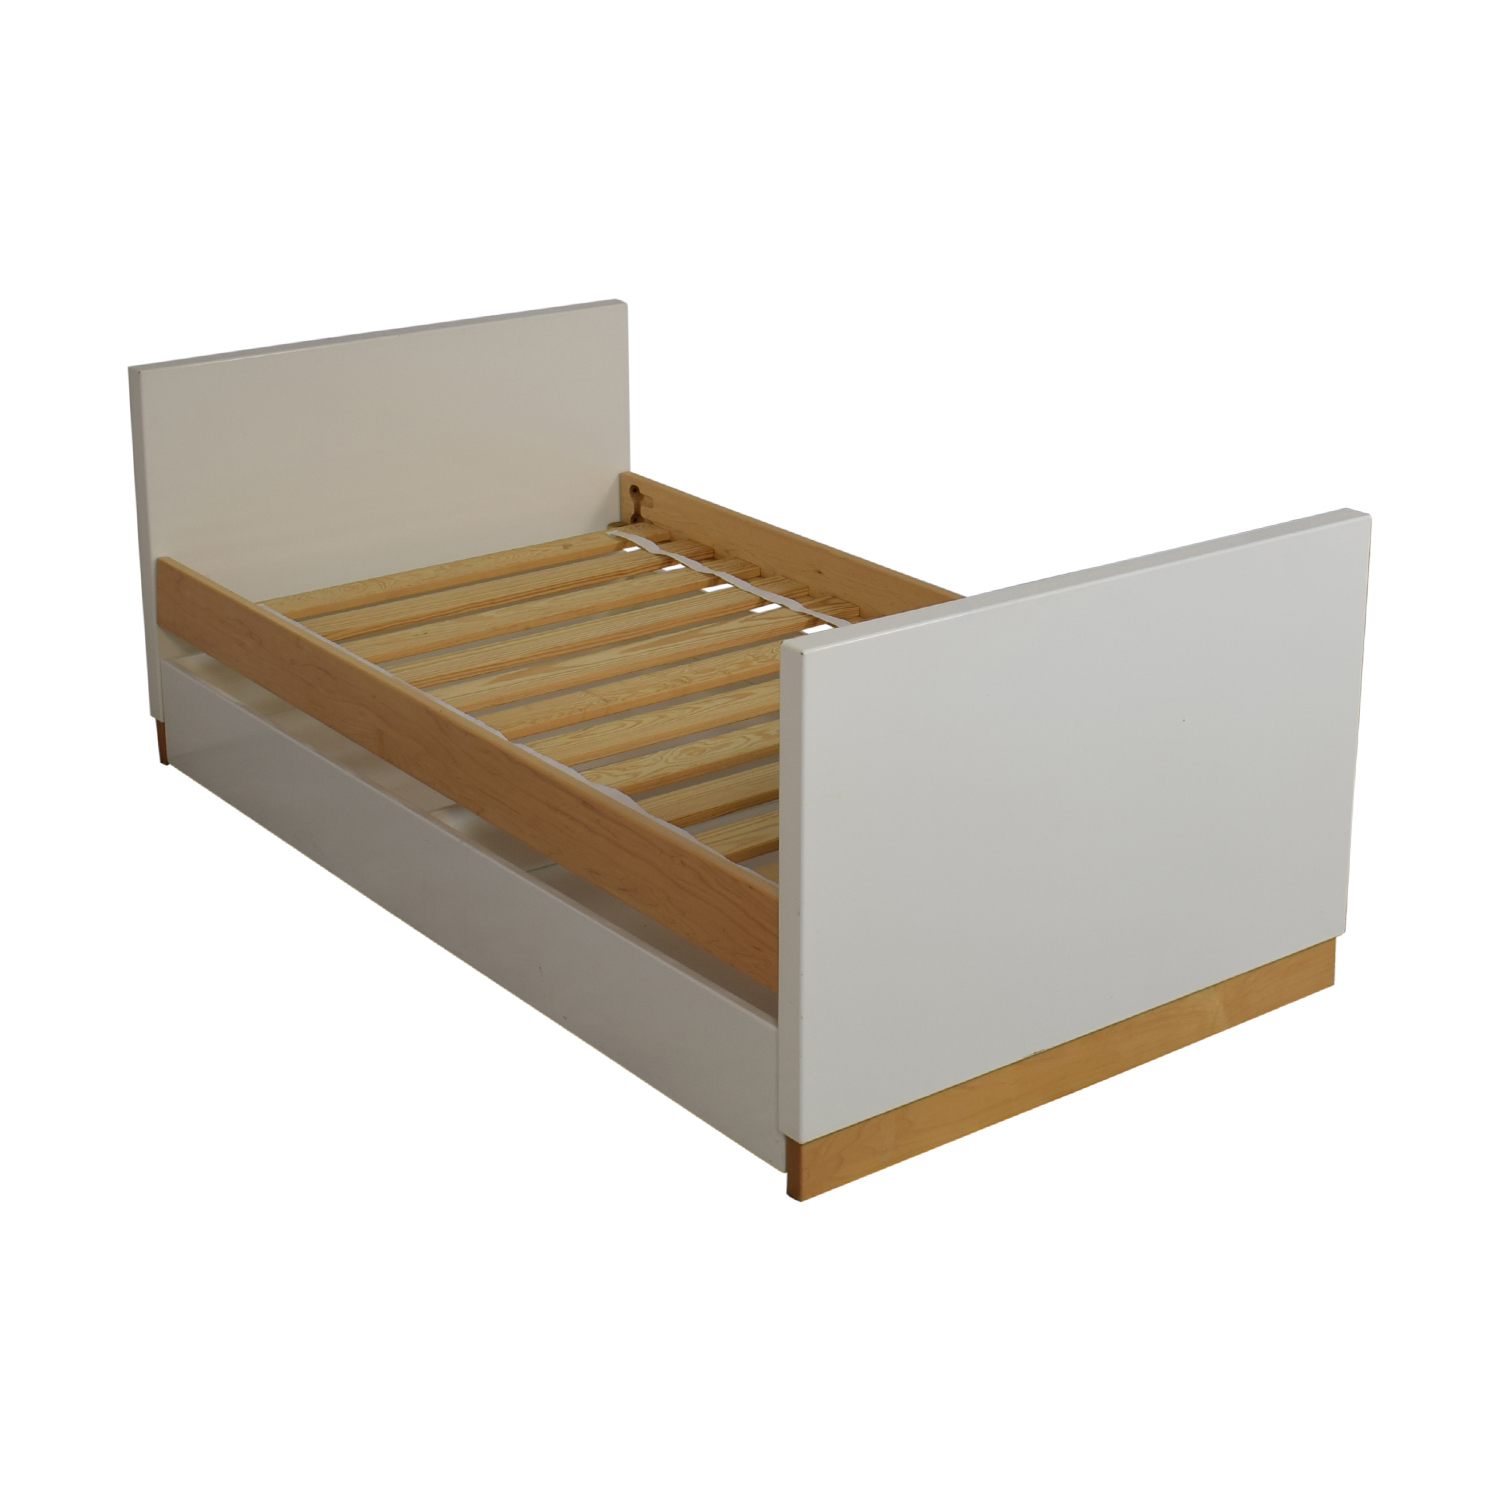 Room & Board Room & Board Moda White and Maple Twin Bed Bed Frames